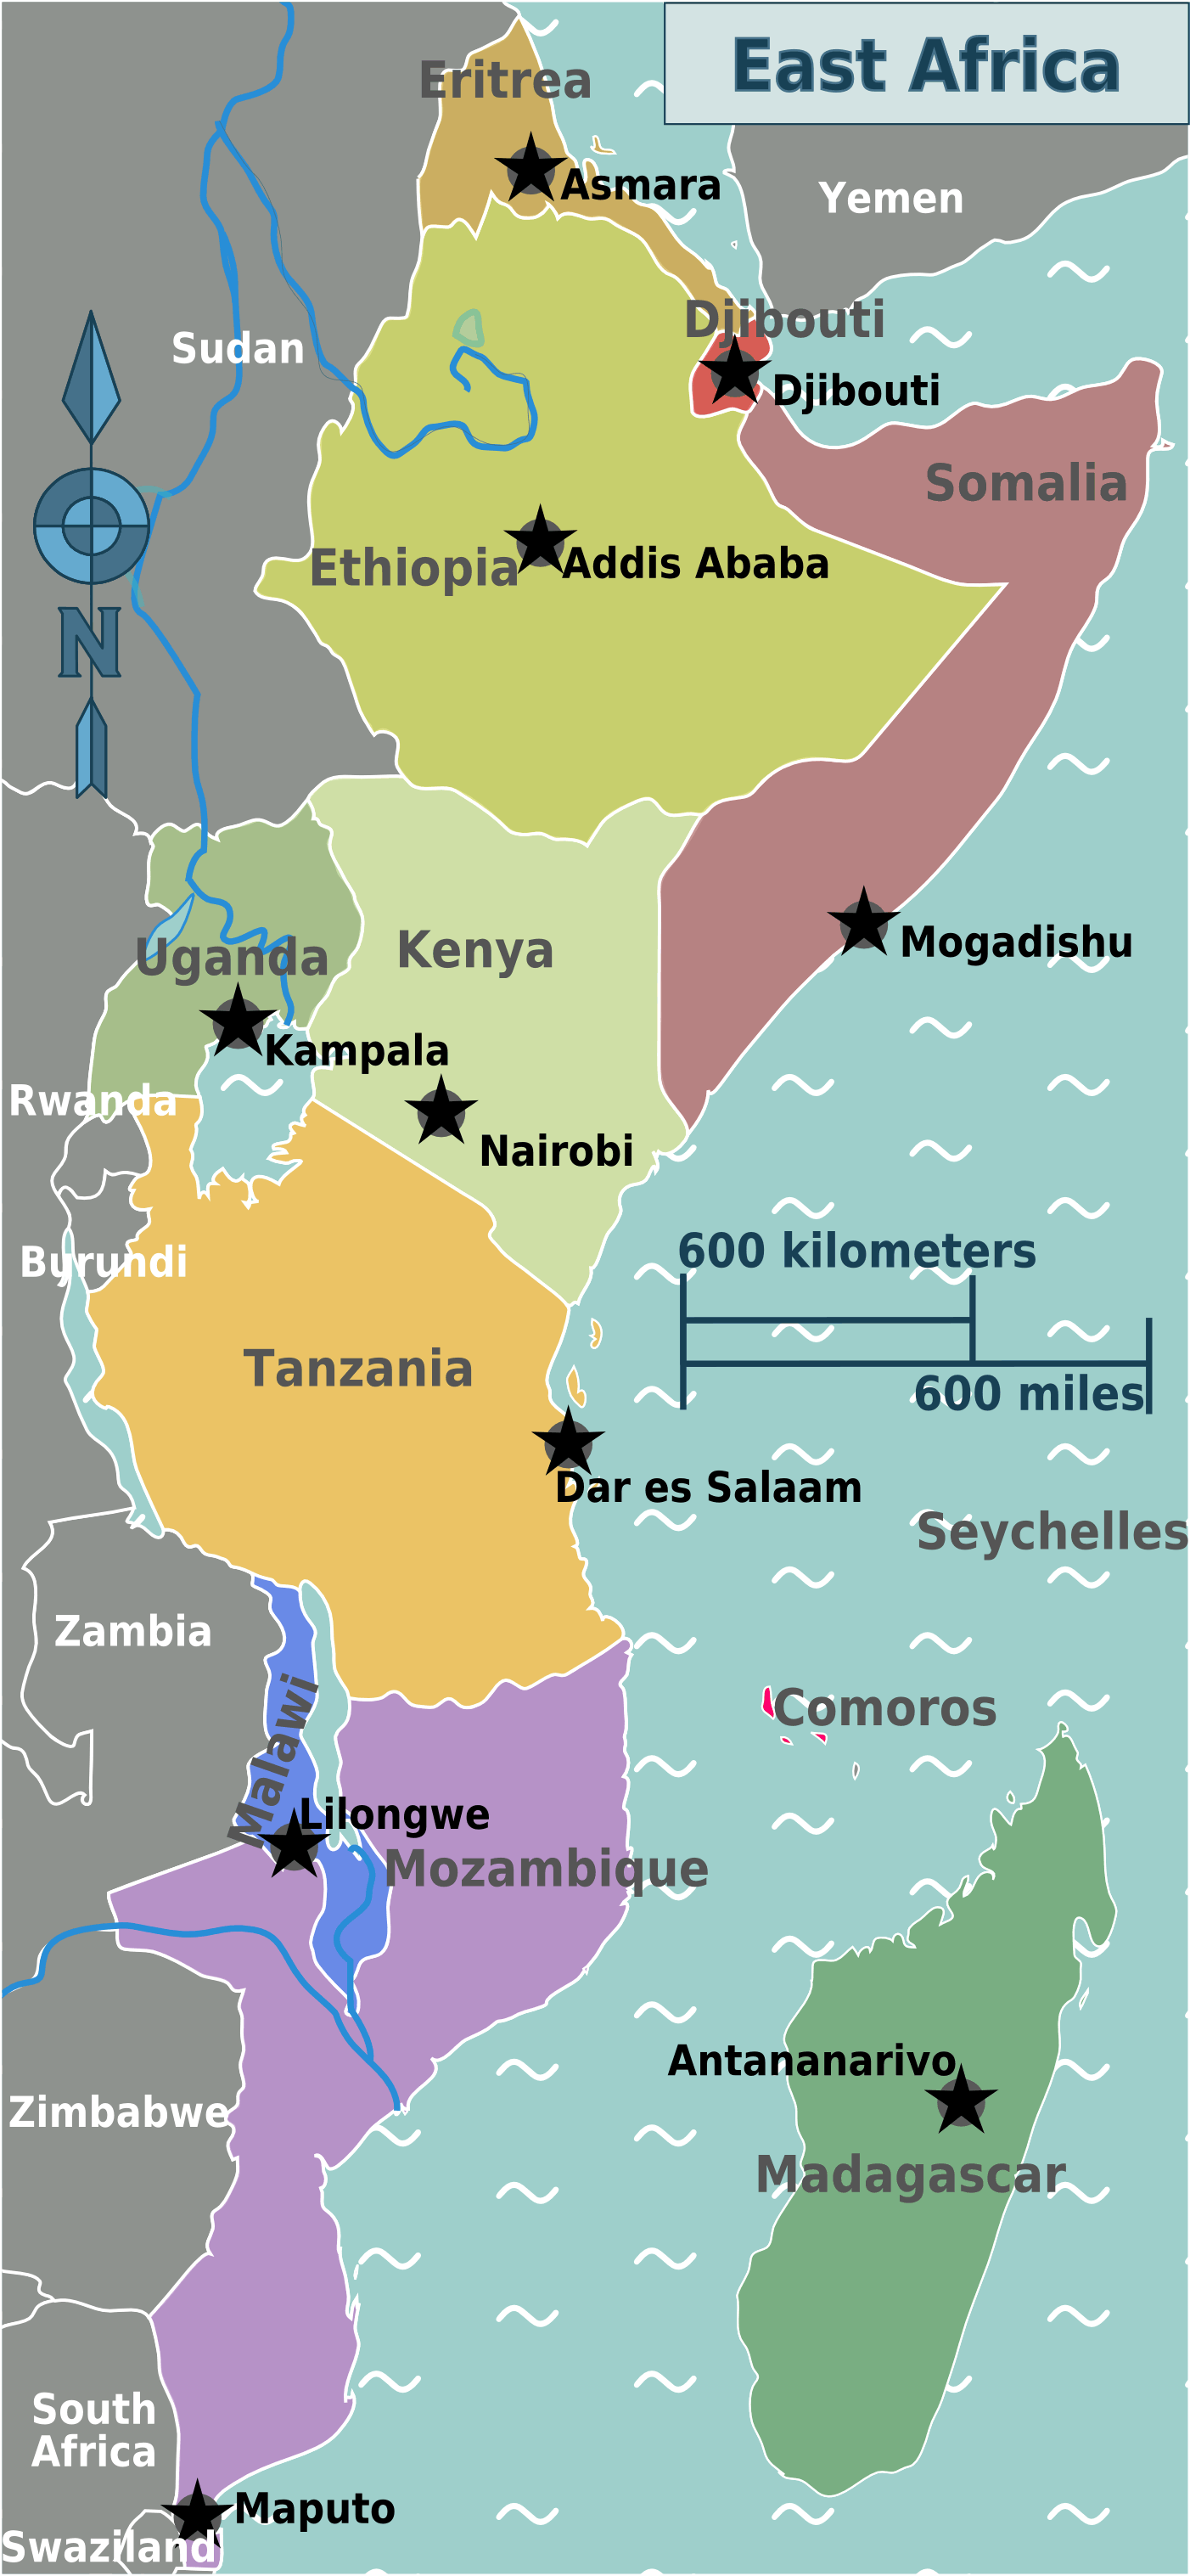 East Africa Resources Climate Change Sanity